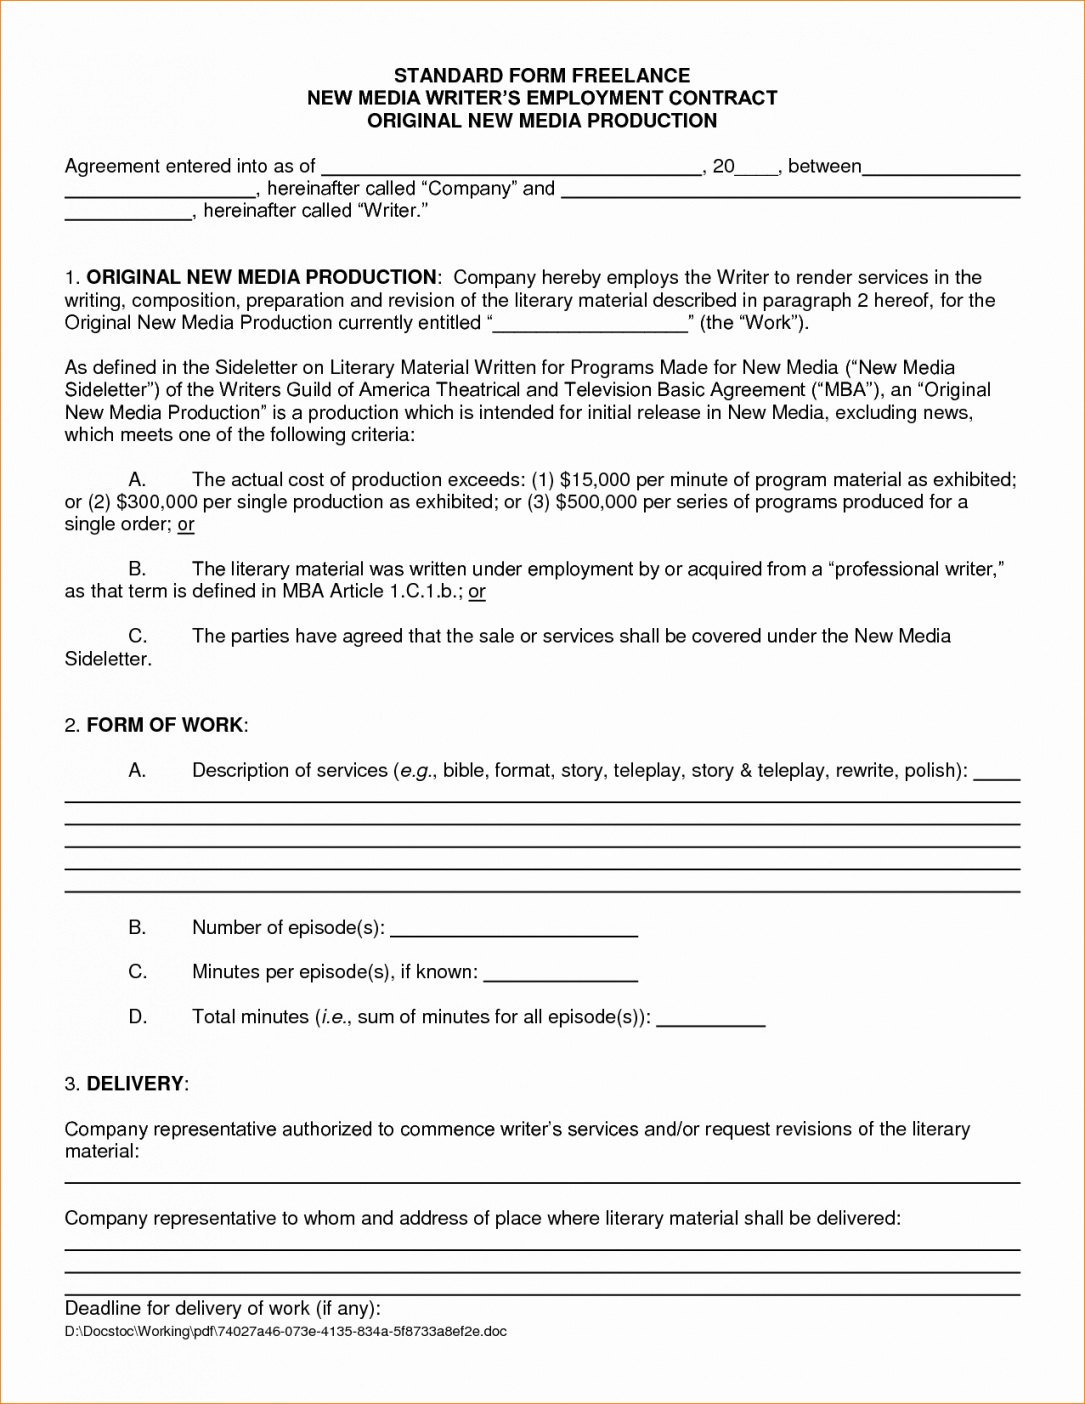 Writing Contract Agreement Freelance Contract Template Luxury Freelance Writer Contract